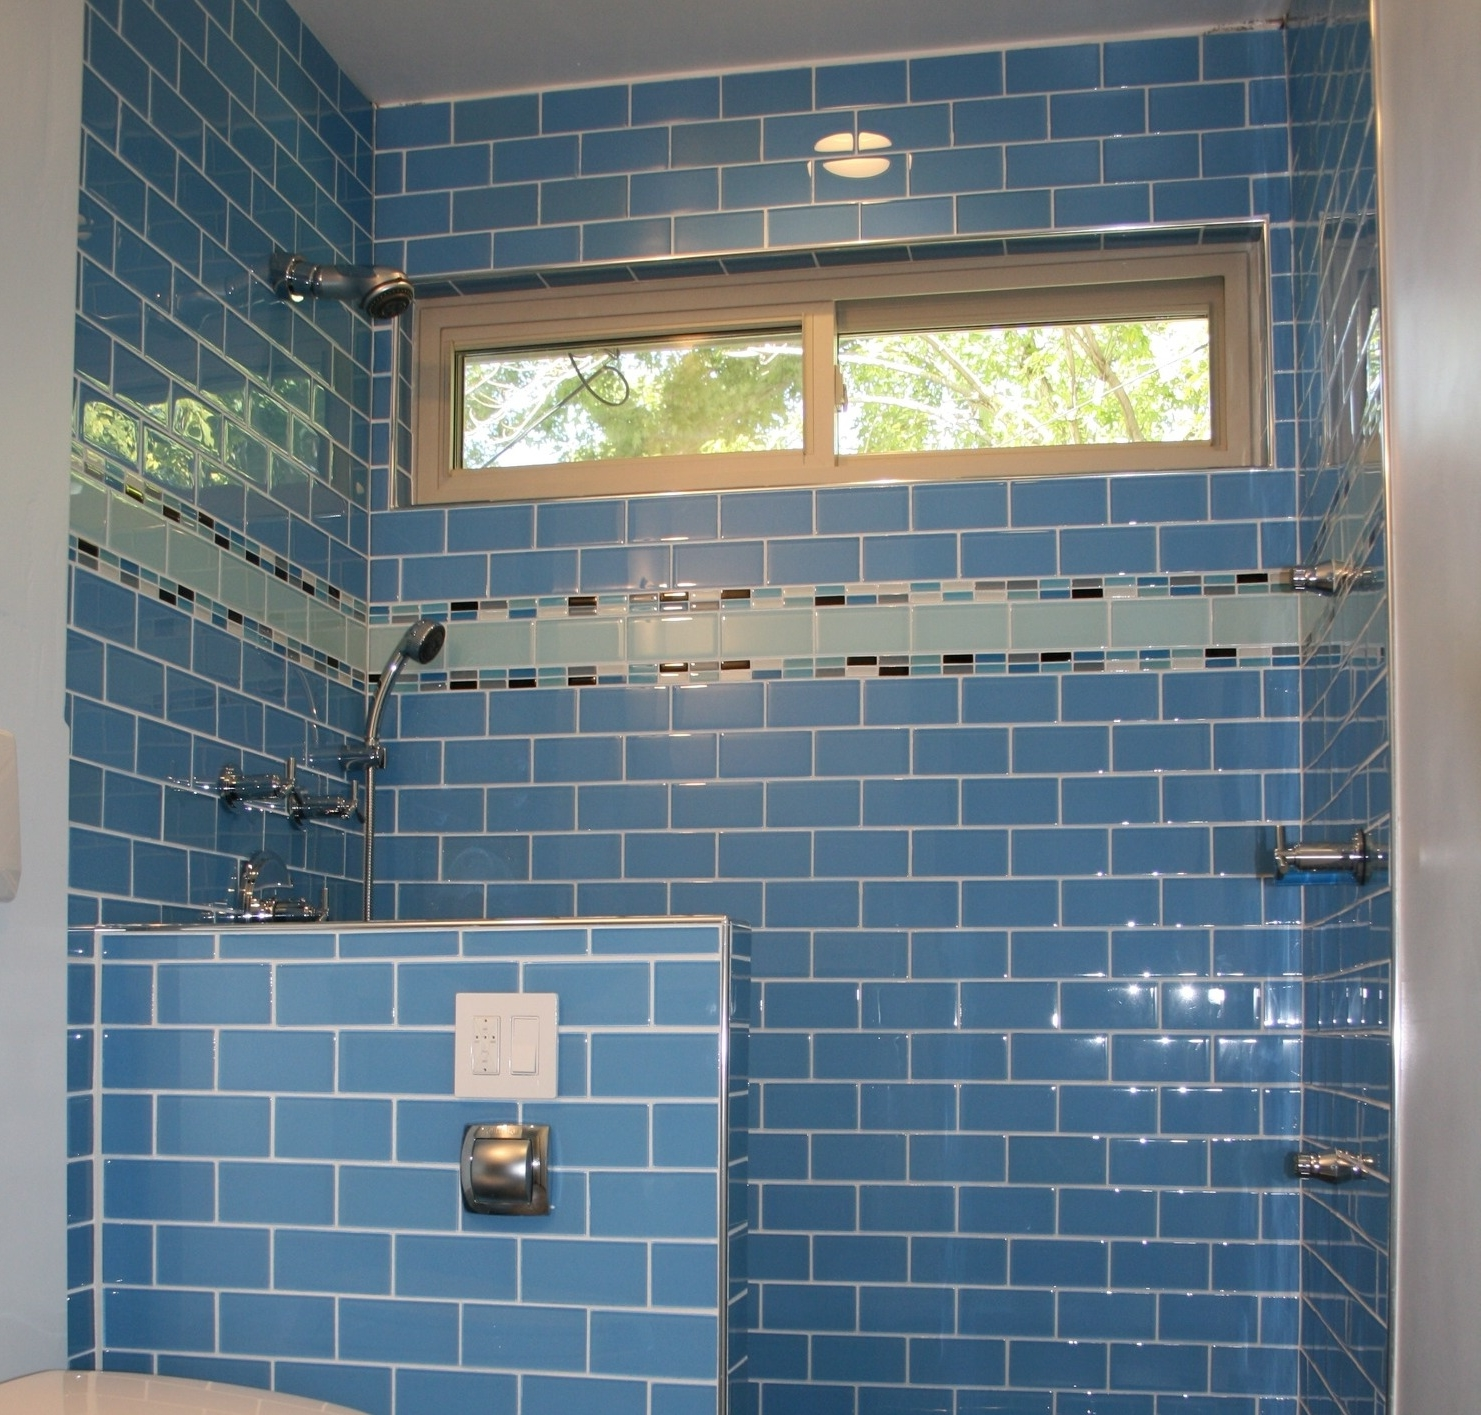 Kitchen Beauty Subway Tile For Kitchen Decorations Ornament Ideas Outlet Backsplash Bathrooms Beveled Shower Tiles You Need To Subway Tile For Kitchen Your Way To The Top And Here (Image 27 of 38)